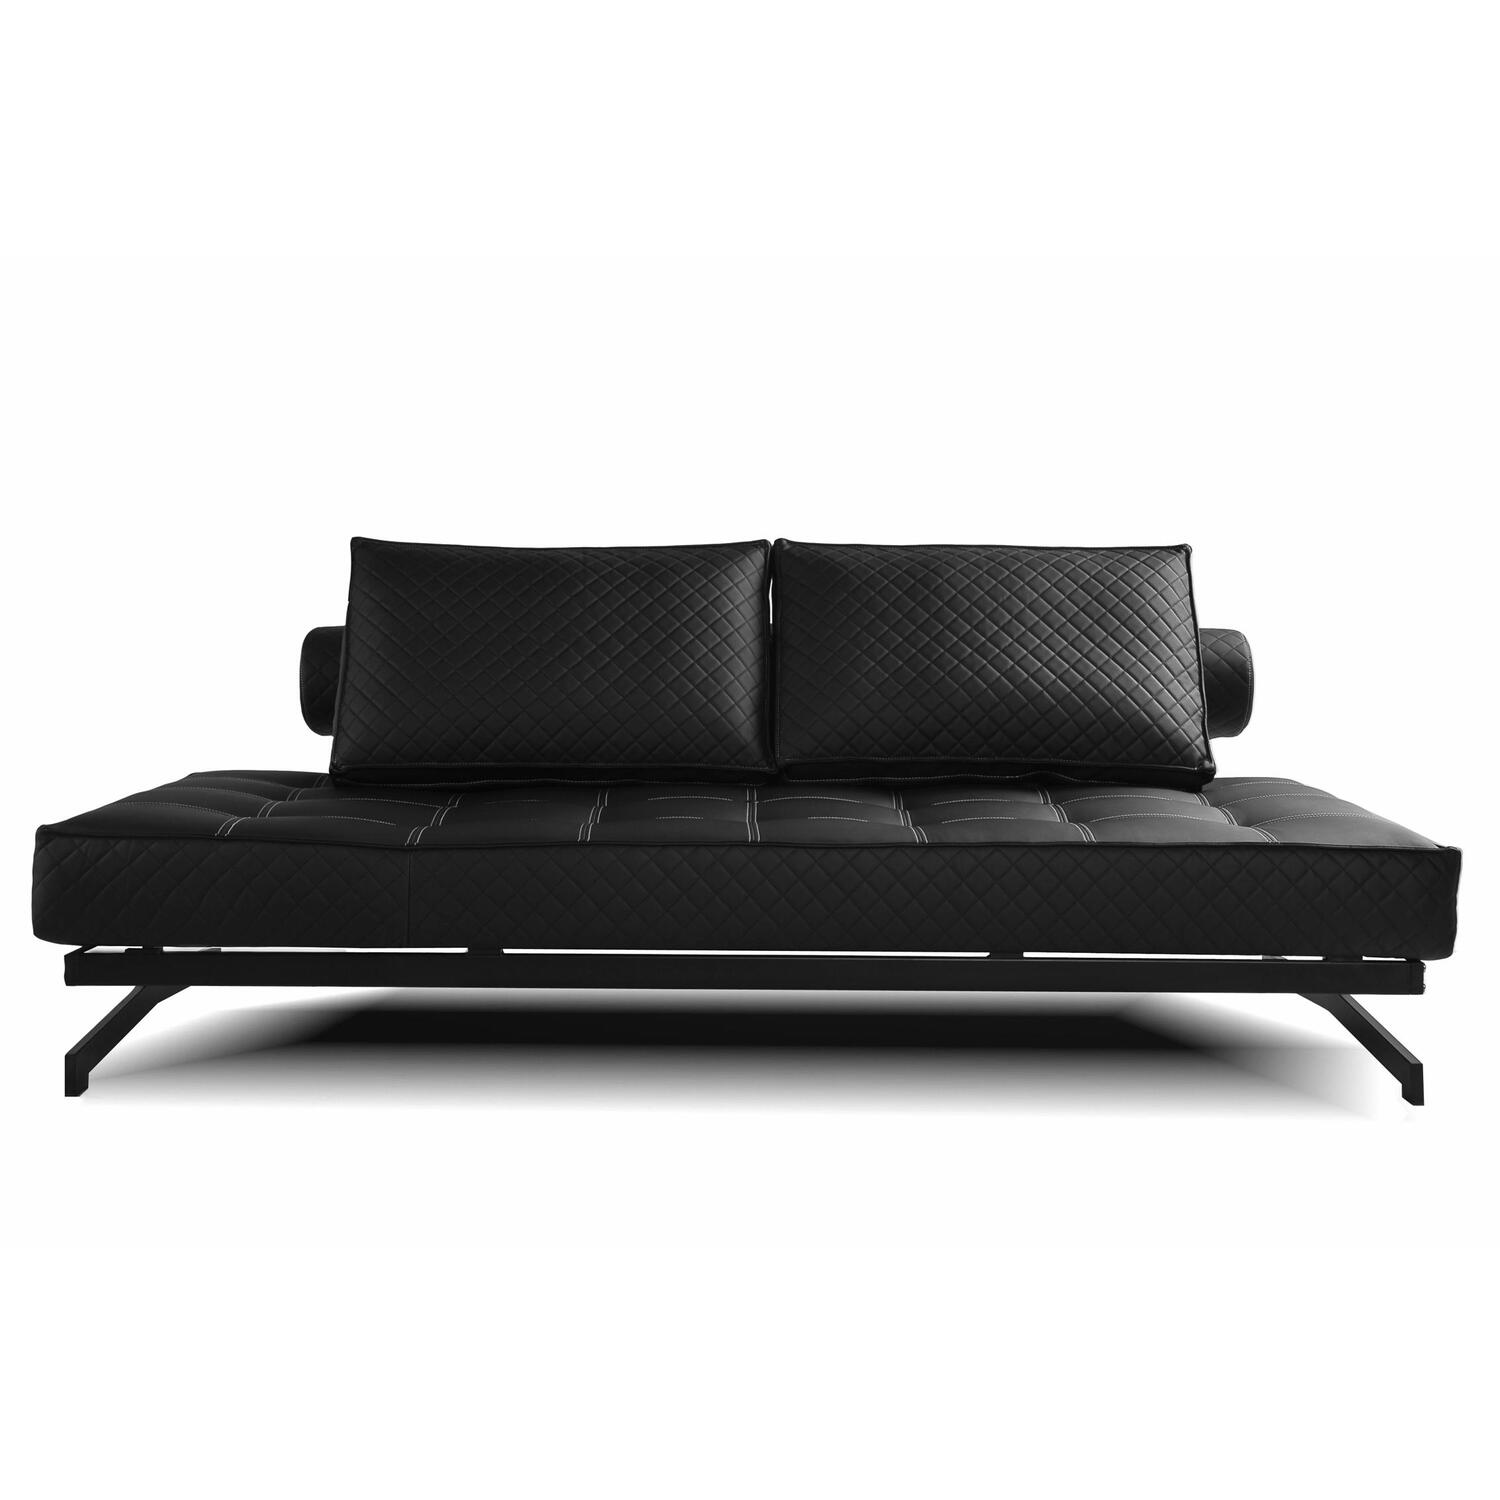 convertible euro sofa lounger ojcommerce. Black Bedroom Furniture Sets. Home Design Ideas